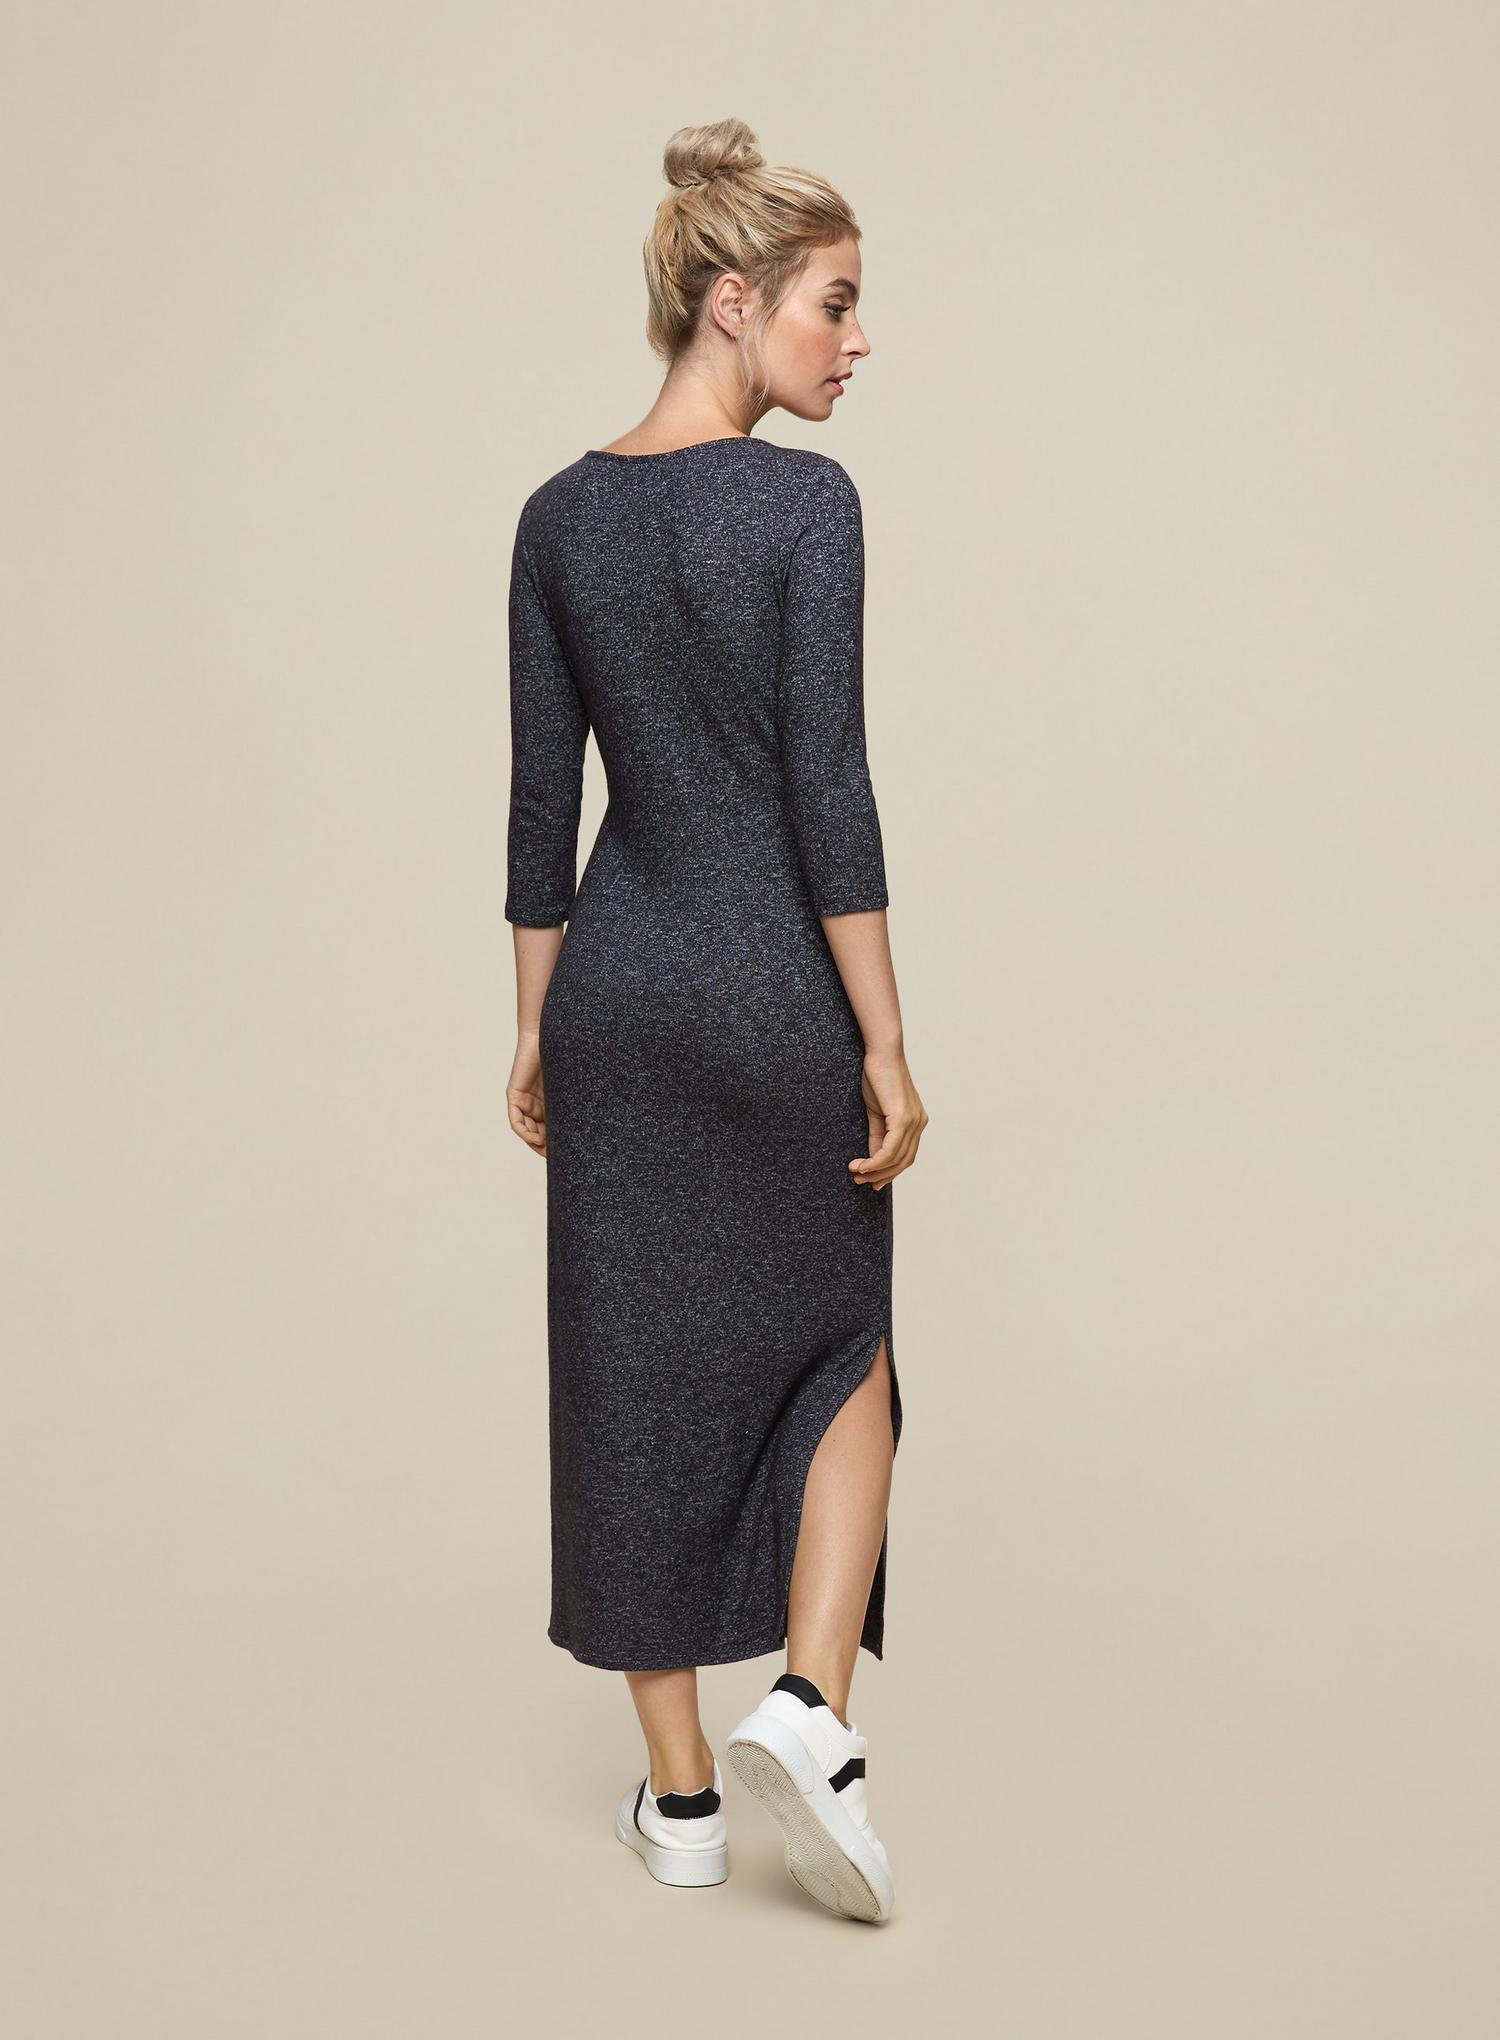 131 Petite Charcoal 3 Quarter Sleeve Brushed Midi  image number 2